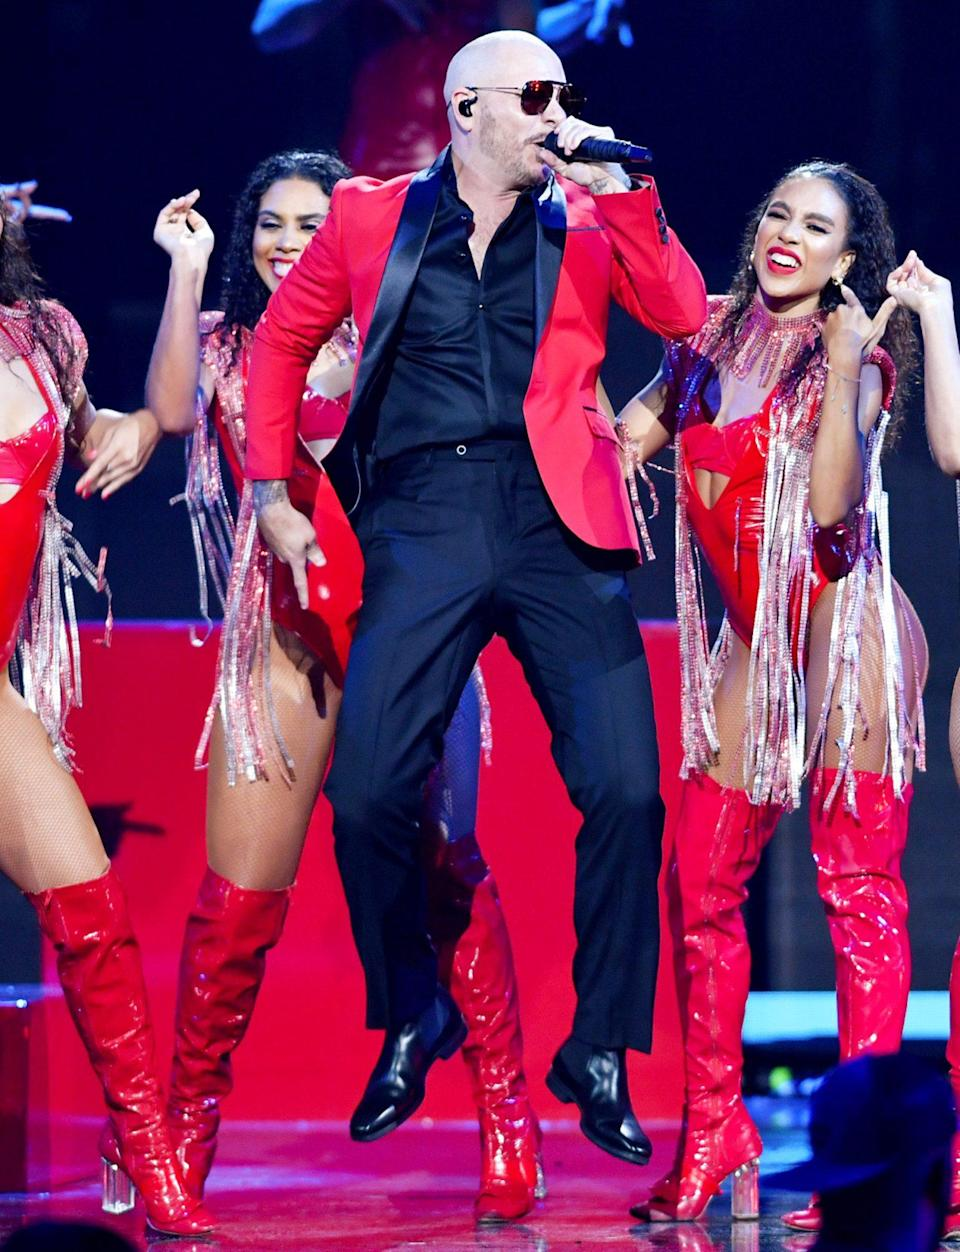 <p>Pitbull lights up the stage at Premios Juventud 2021 at Watsco Center on July 22 in Coral Gables, Florida.</p>